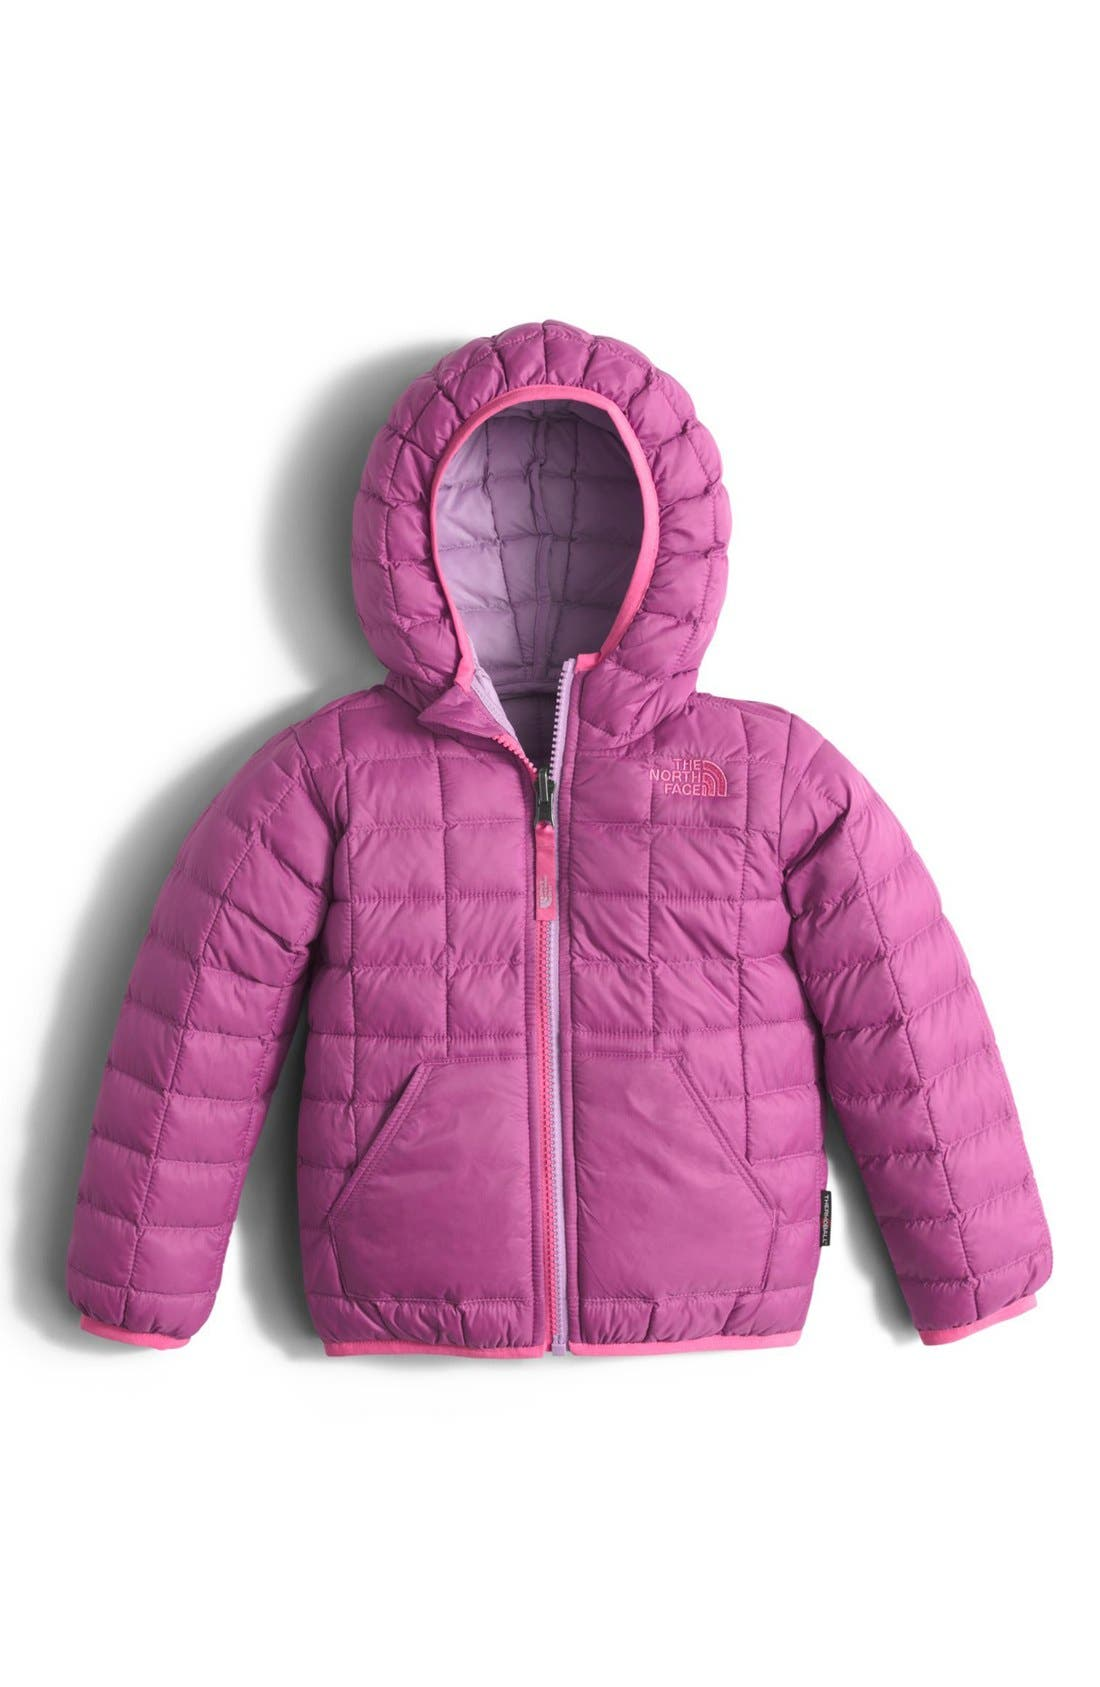 Main Image - The North Face 'ThermoBall™' PrimaLoft® Hooded Jacket (Toddler Girls & Little Girls)